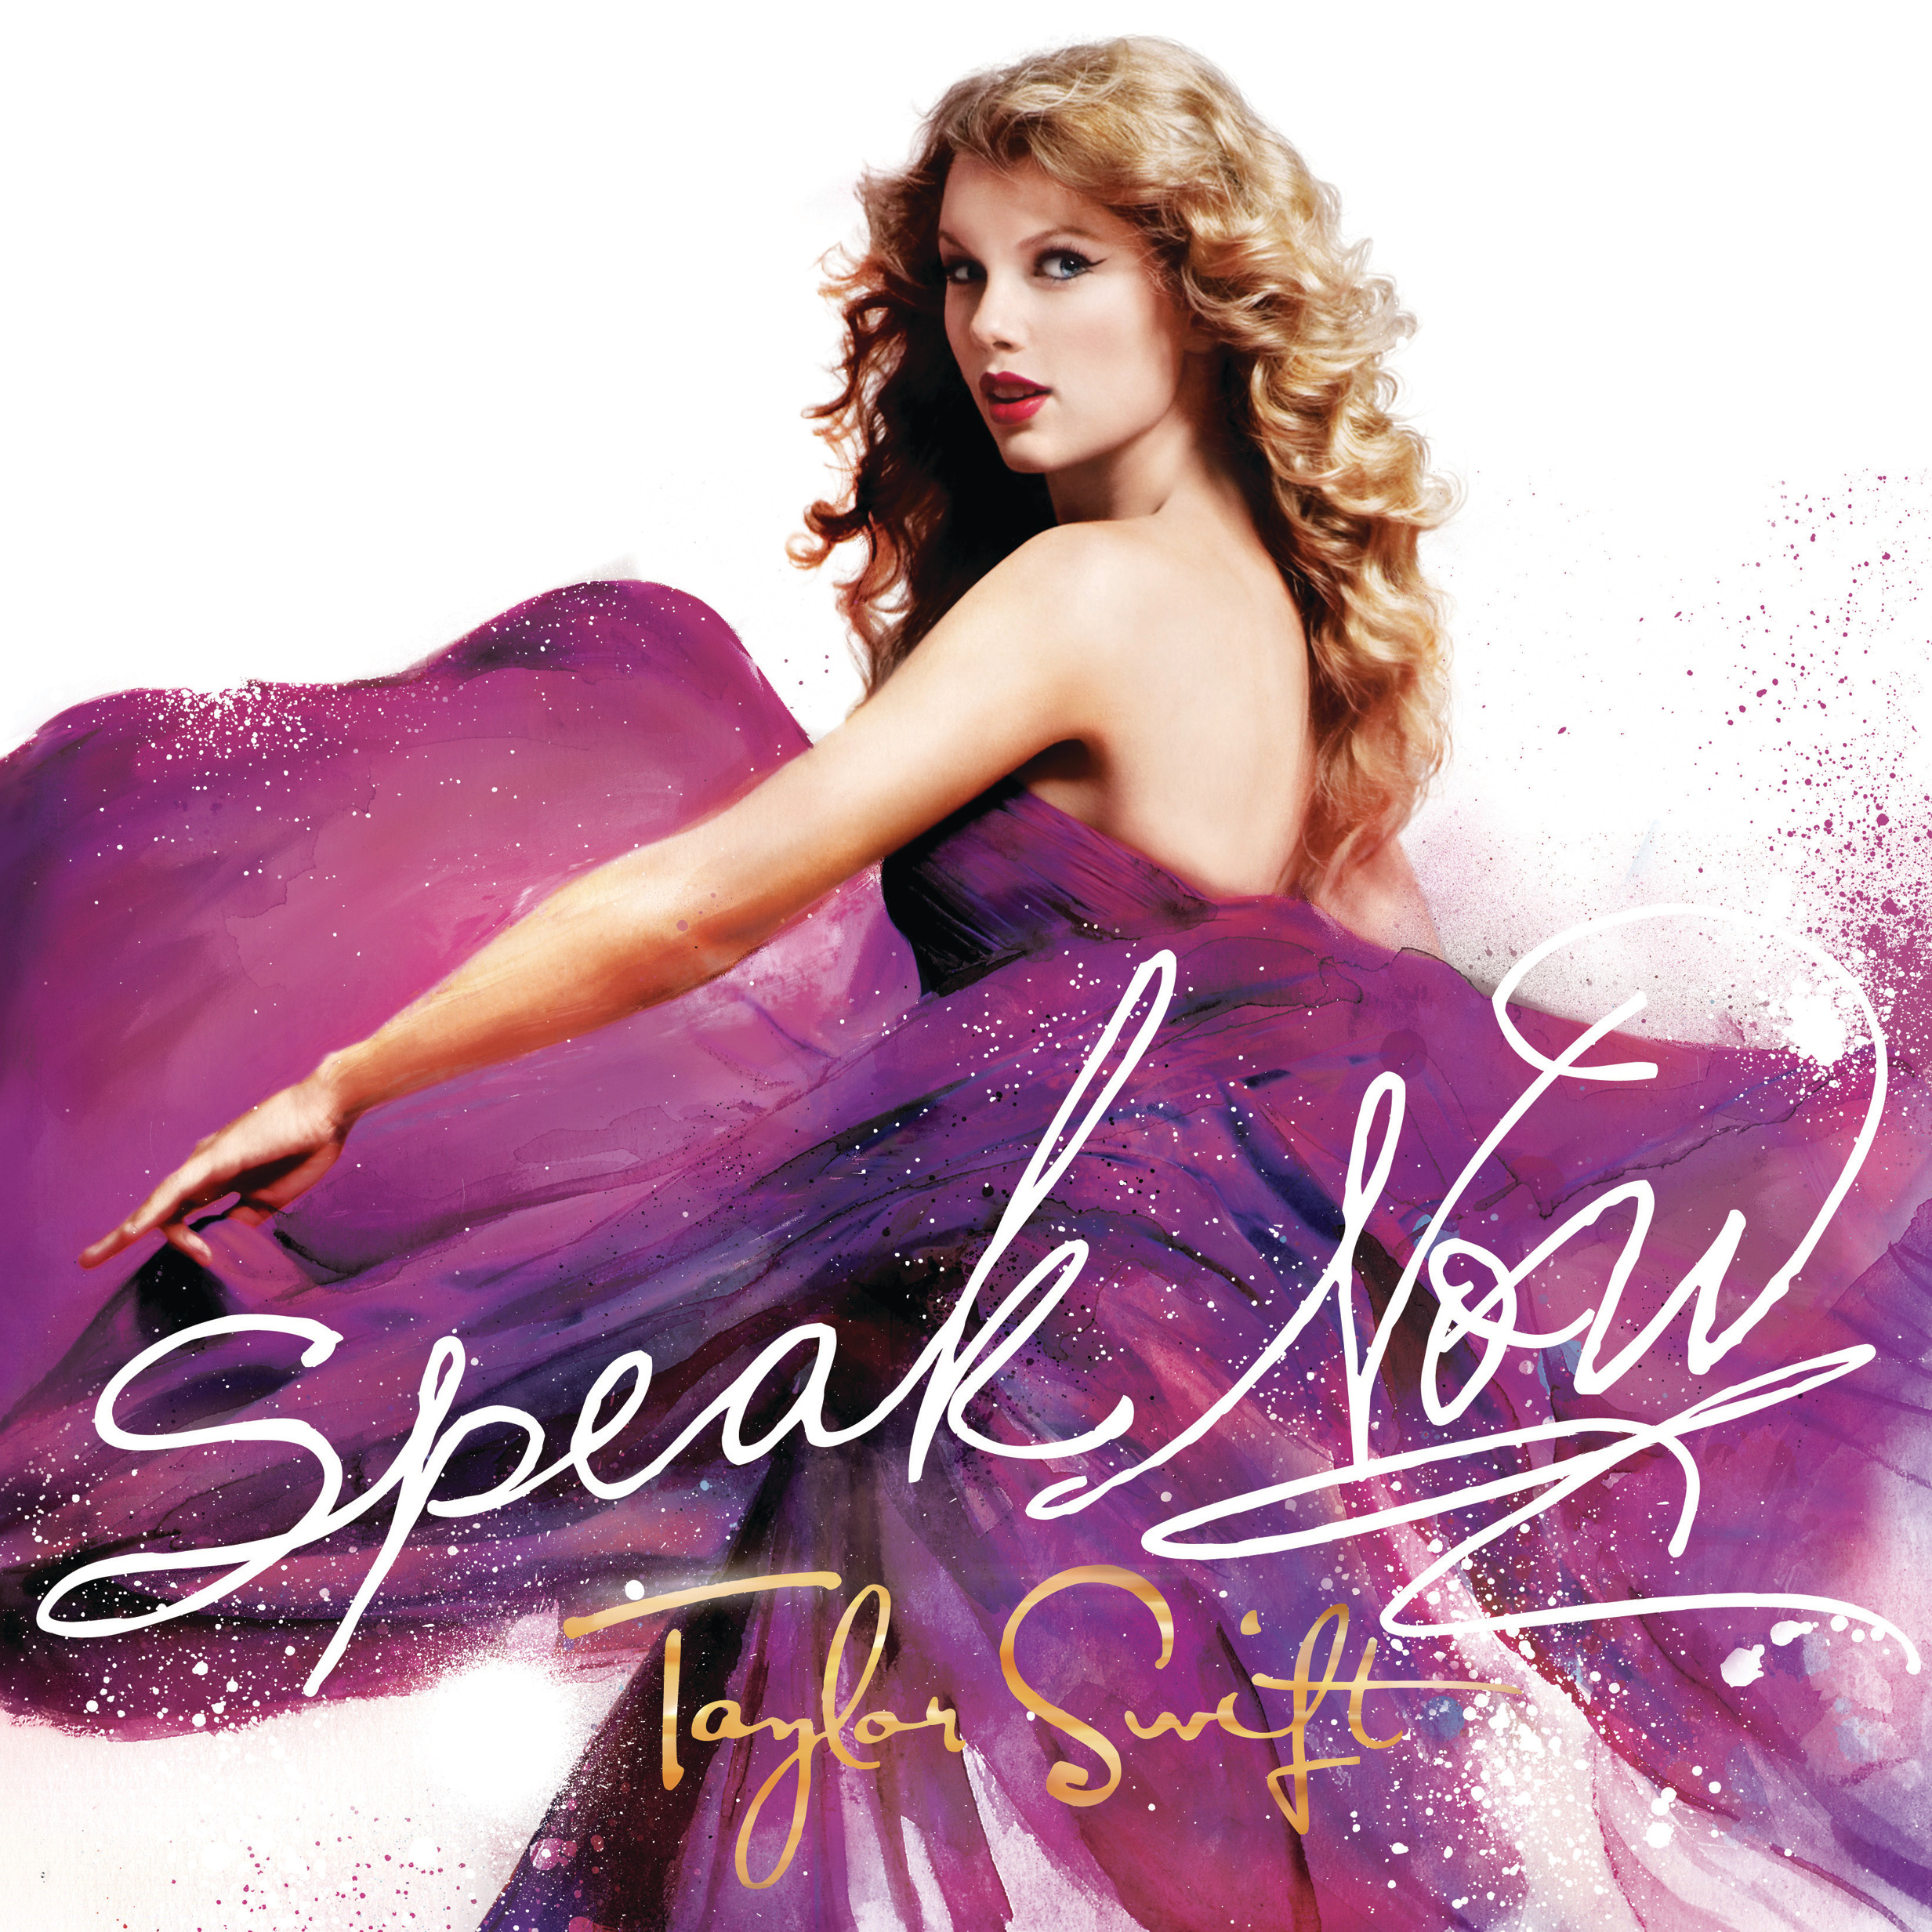 Speak Now | Taylor Swift Wiki | FANDOM powered by Wikia